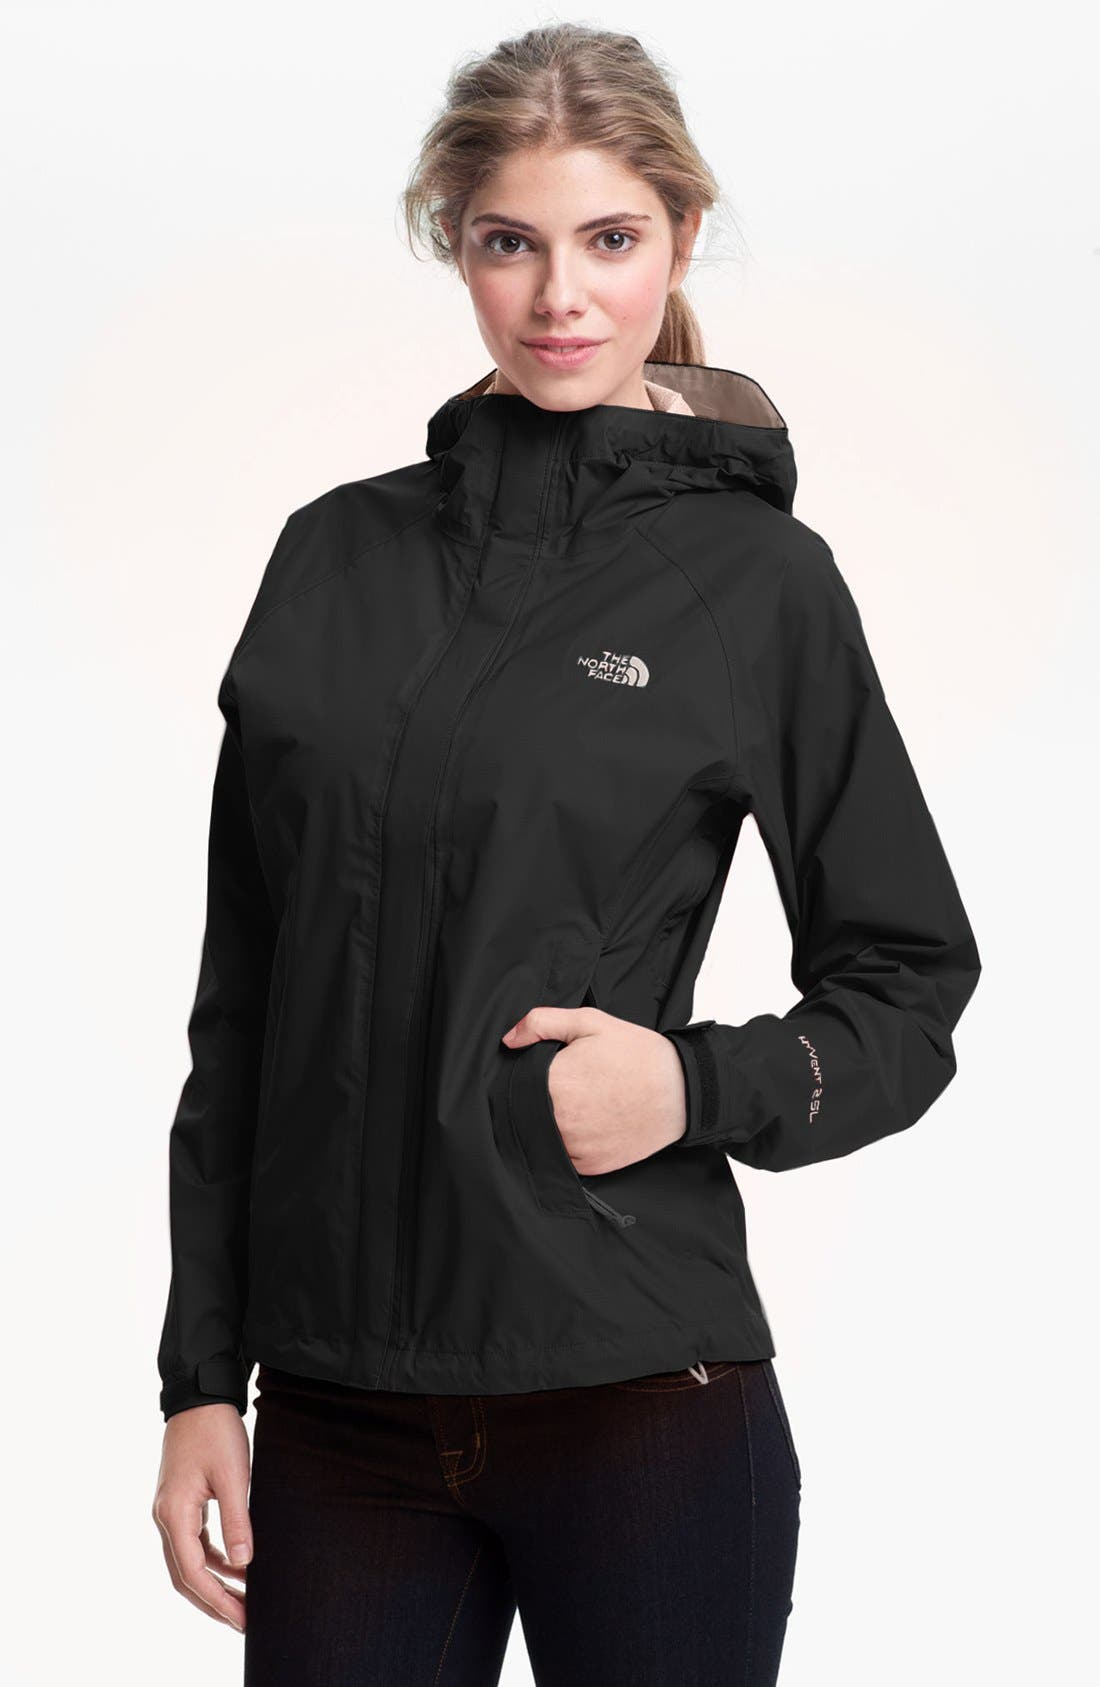 Alternate Image 1 Selected - The North Face 'Venture' Waterproof Jacket